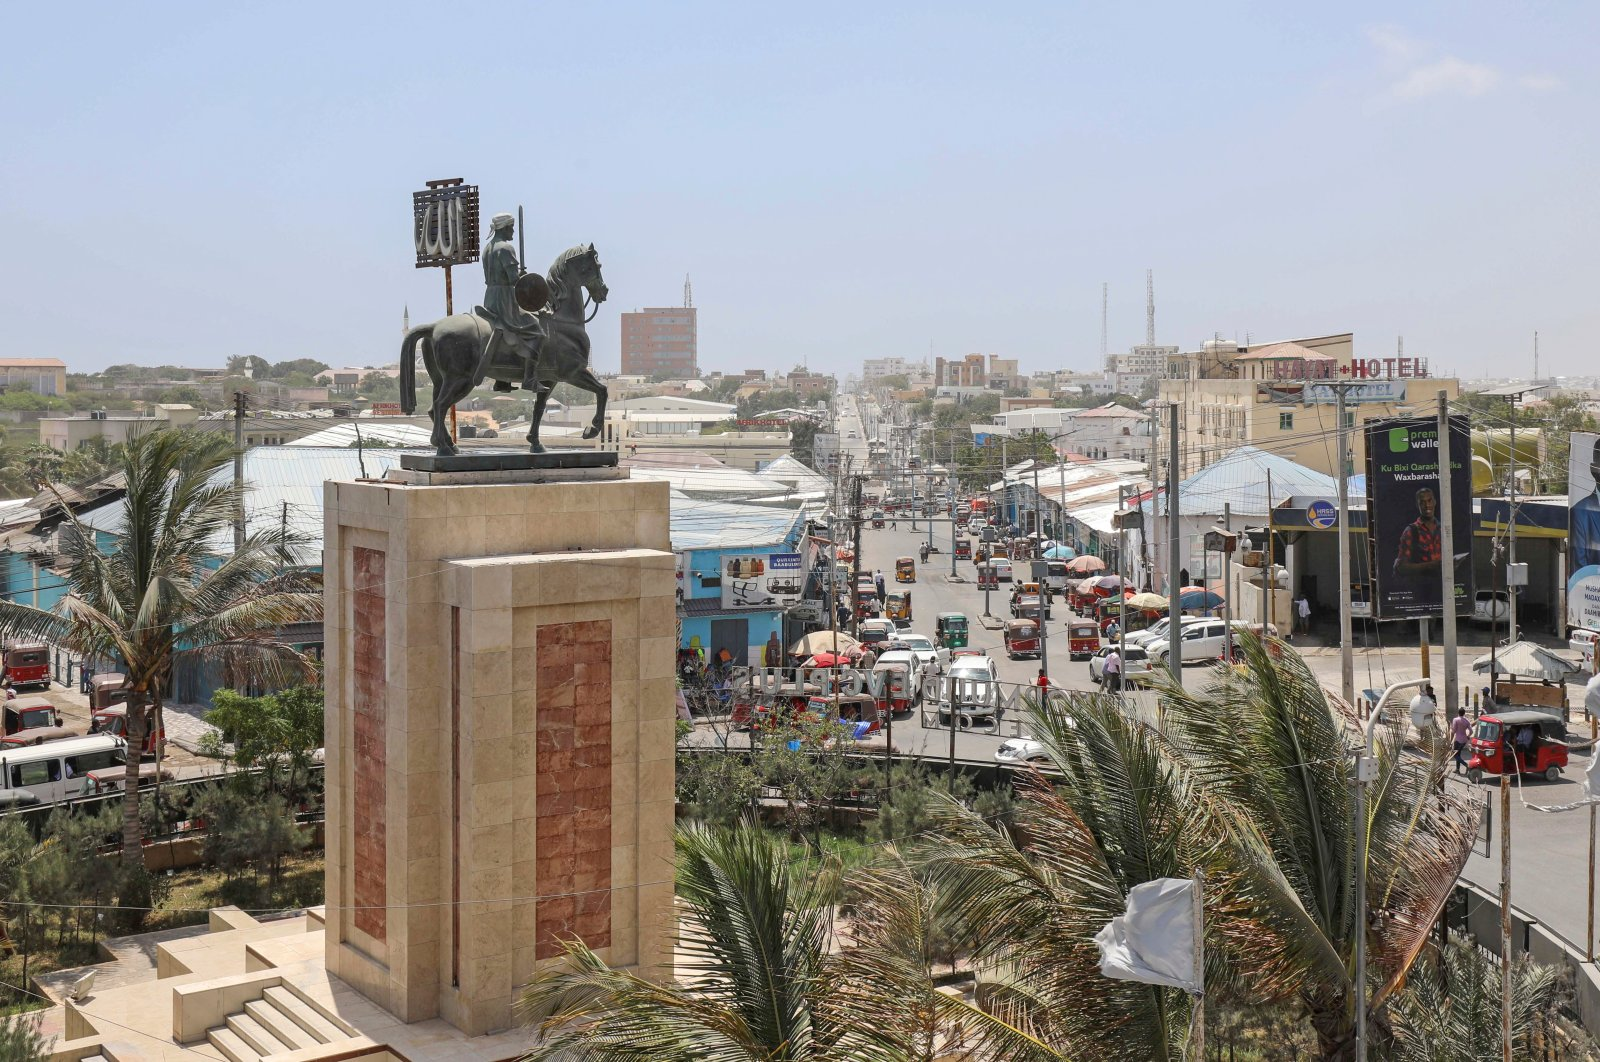 A general view of the Ahmed Gurey monument at the KM4 roundabout in Mogadishu, Somalia, Feb. 8, 2021. (Reuters Photo)